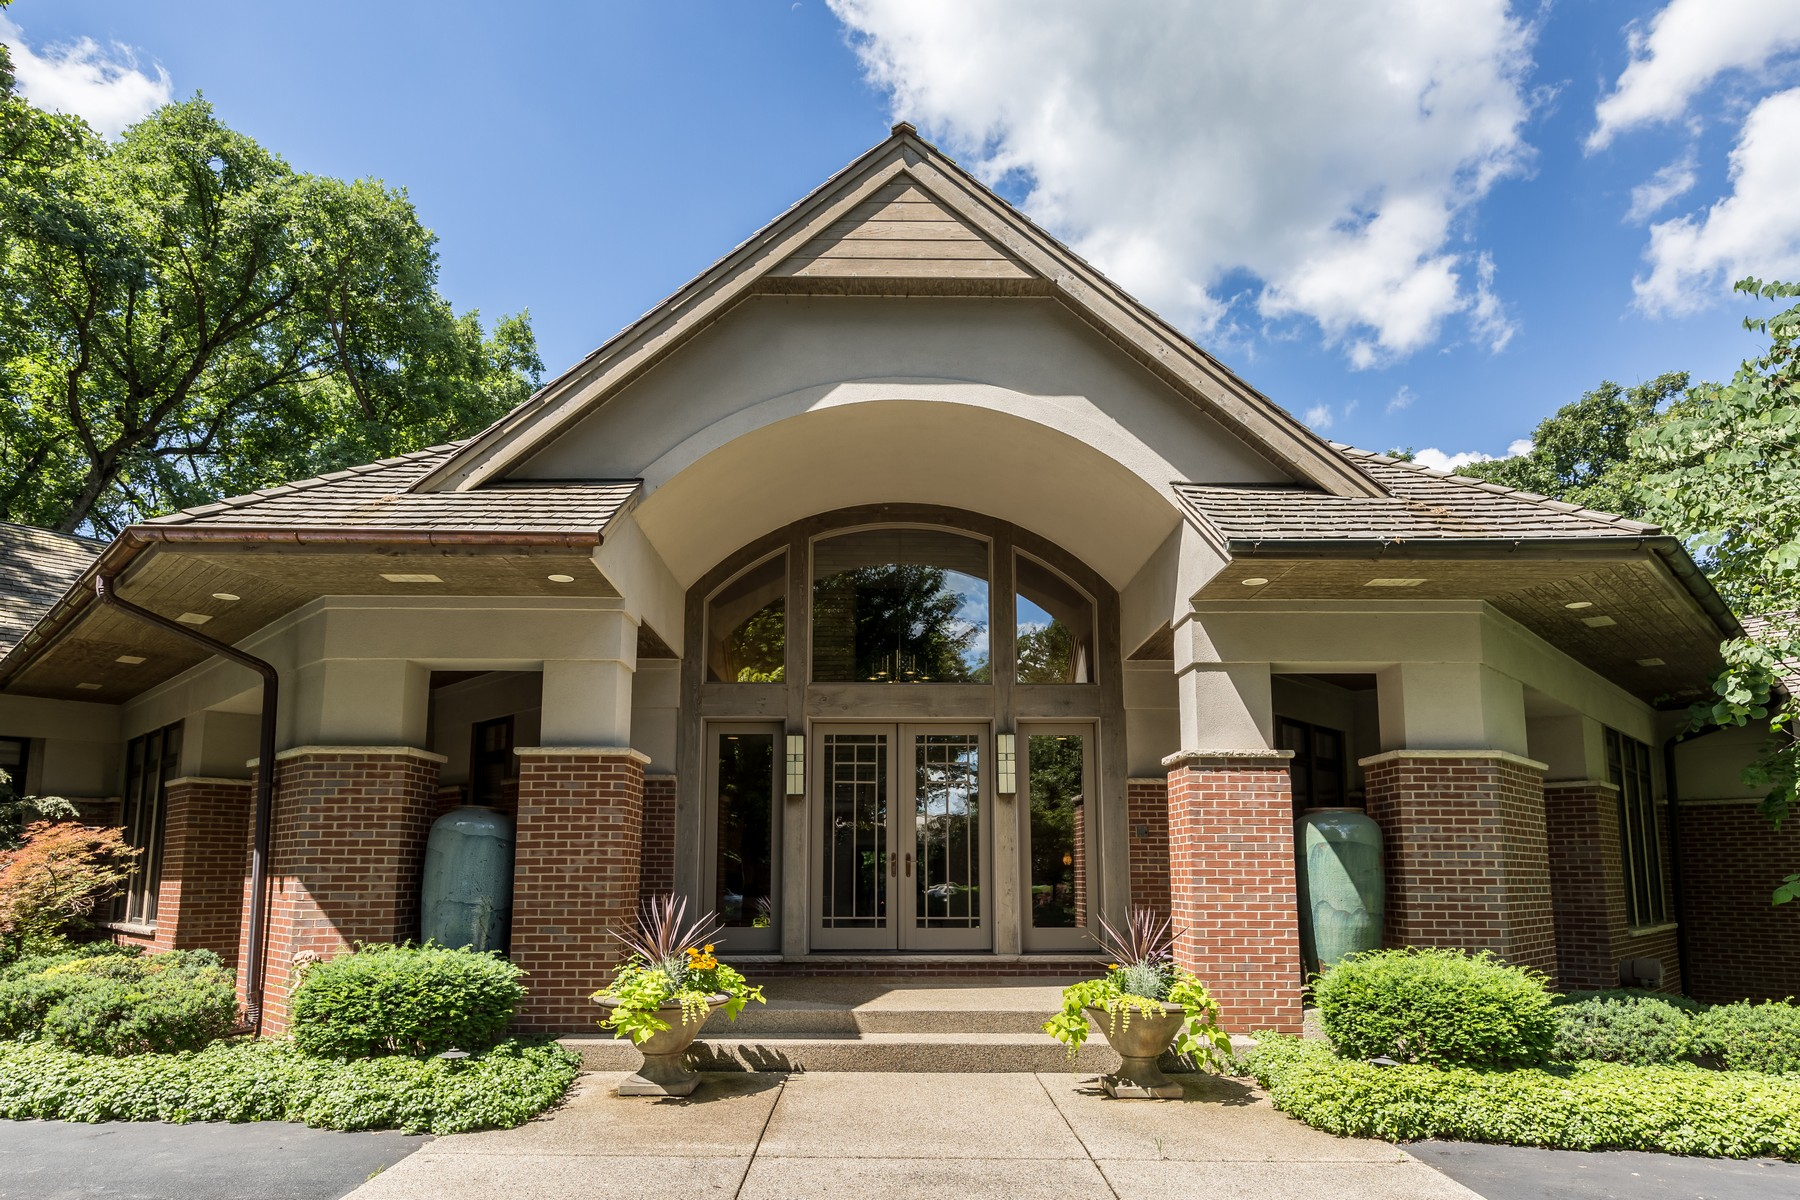 Single Family Home for Sale at Stunning Custom Home 132 N Wynstone Drive North Barrington, Illinois, 60010 United States